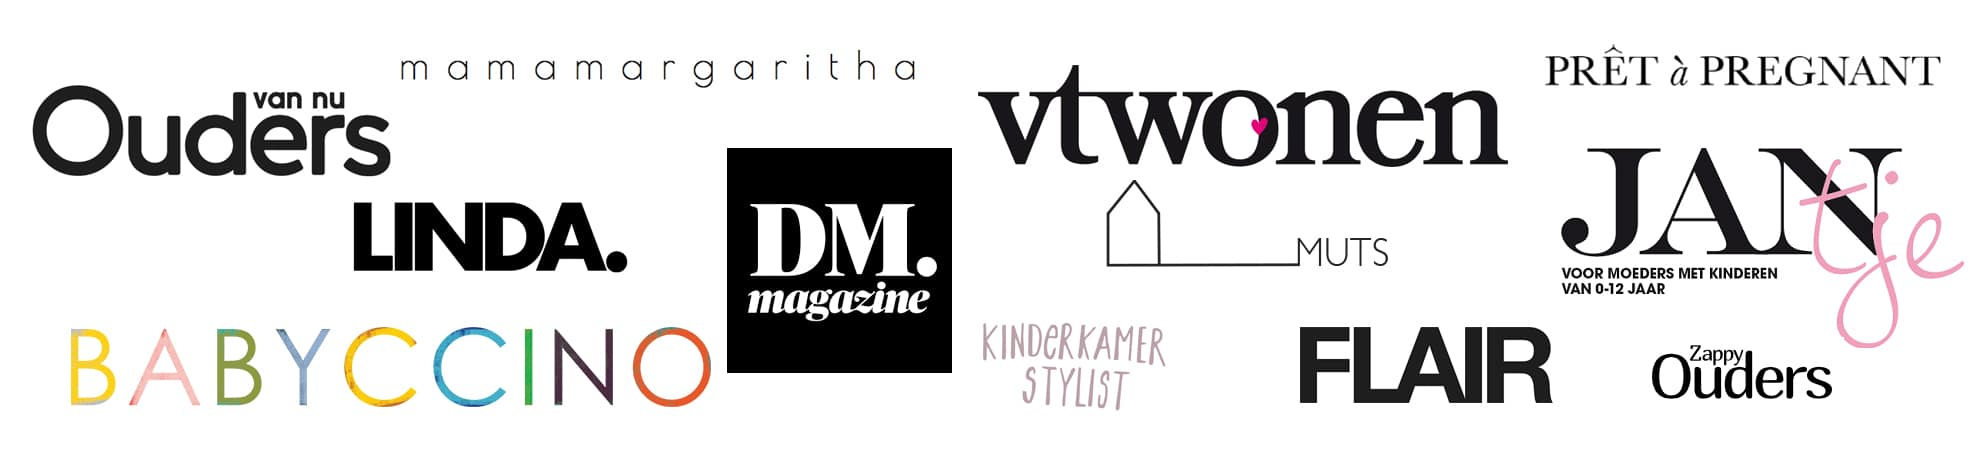 MrStarskyAmsterdam featured in linda flair kinderkamerstylist babyccino